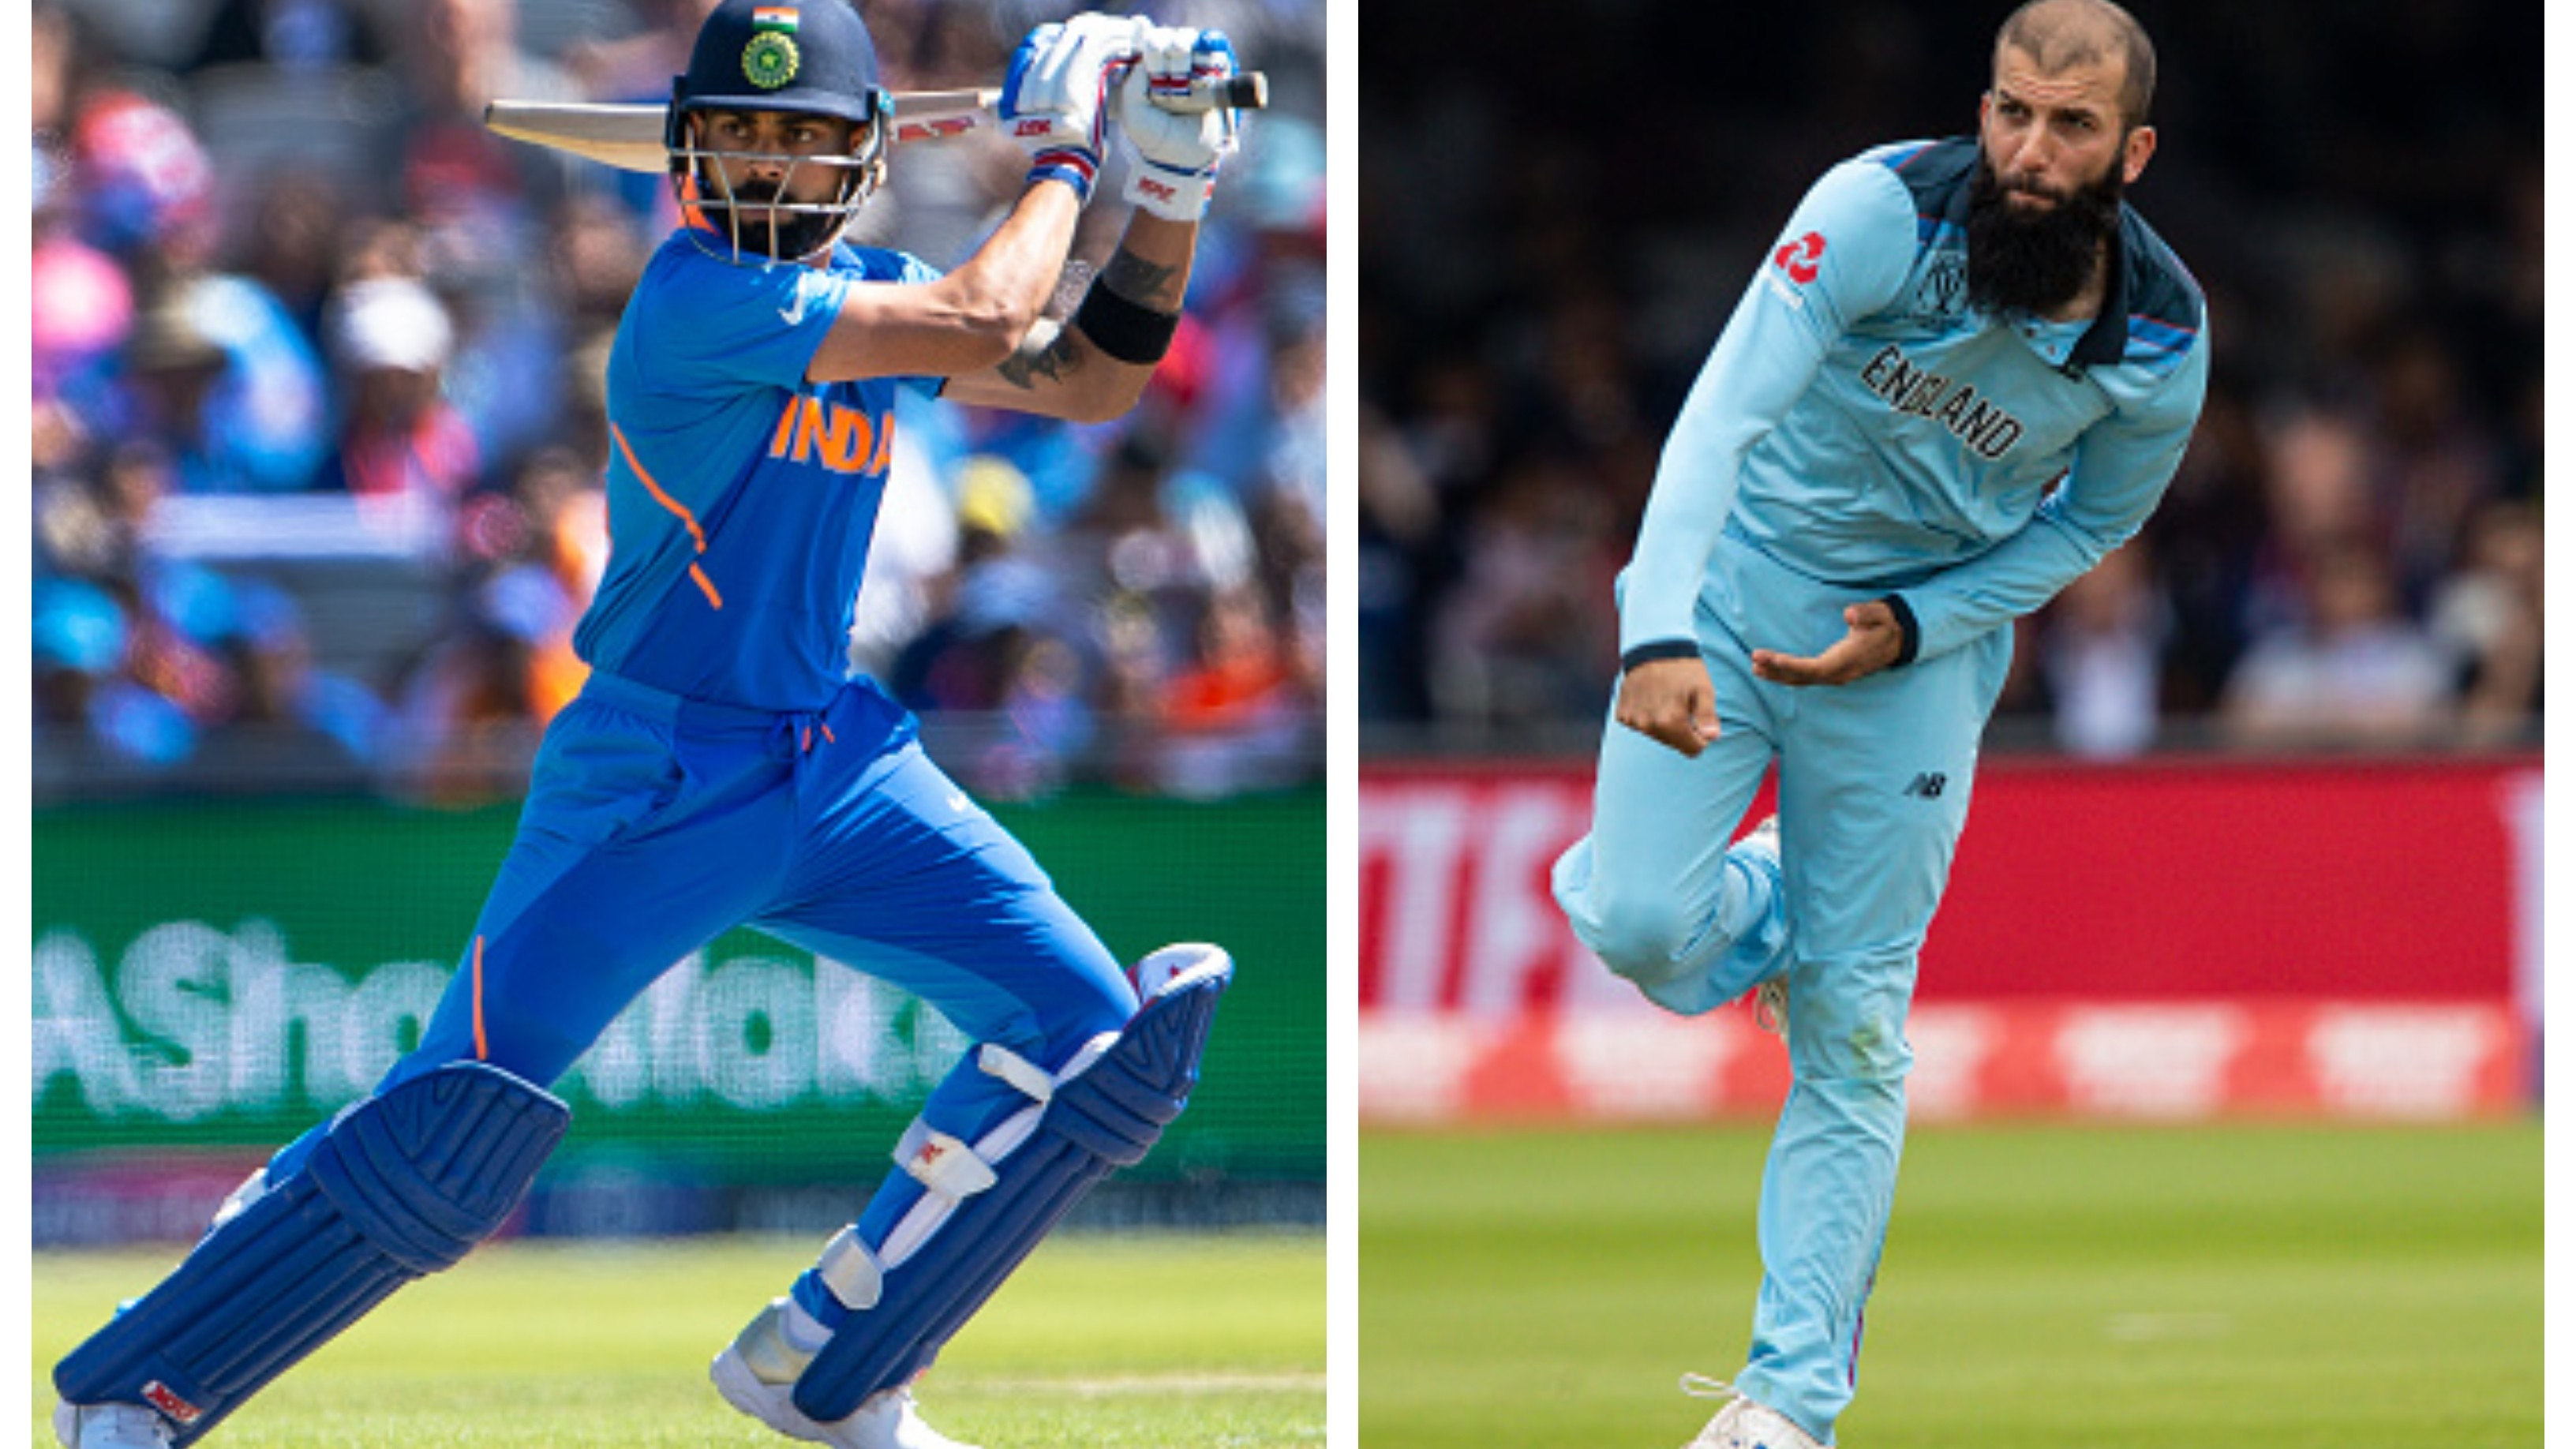 CWC 2019: Moeen Ali keen to get rid of Virat Kohli in England's must-win game against India